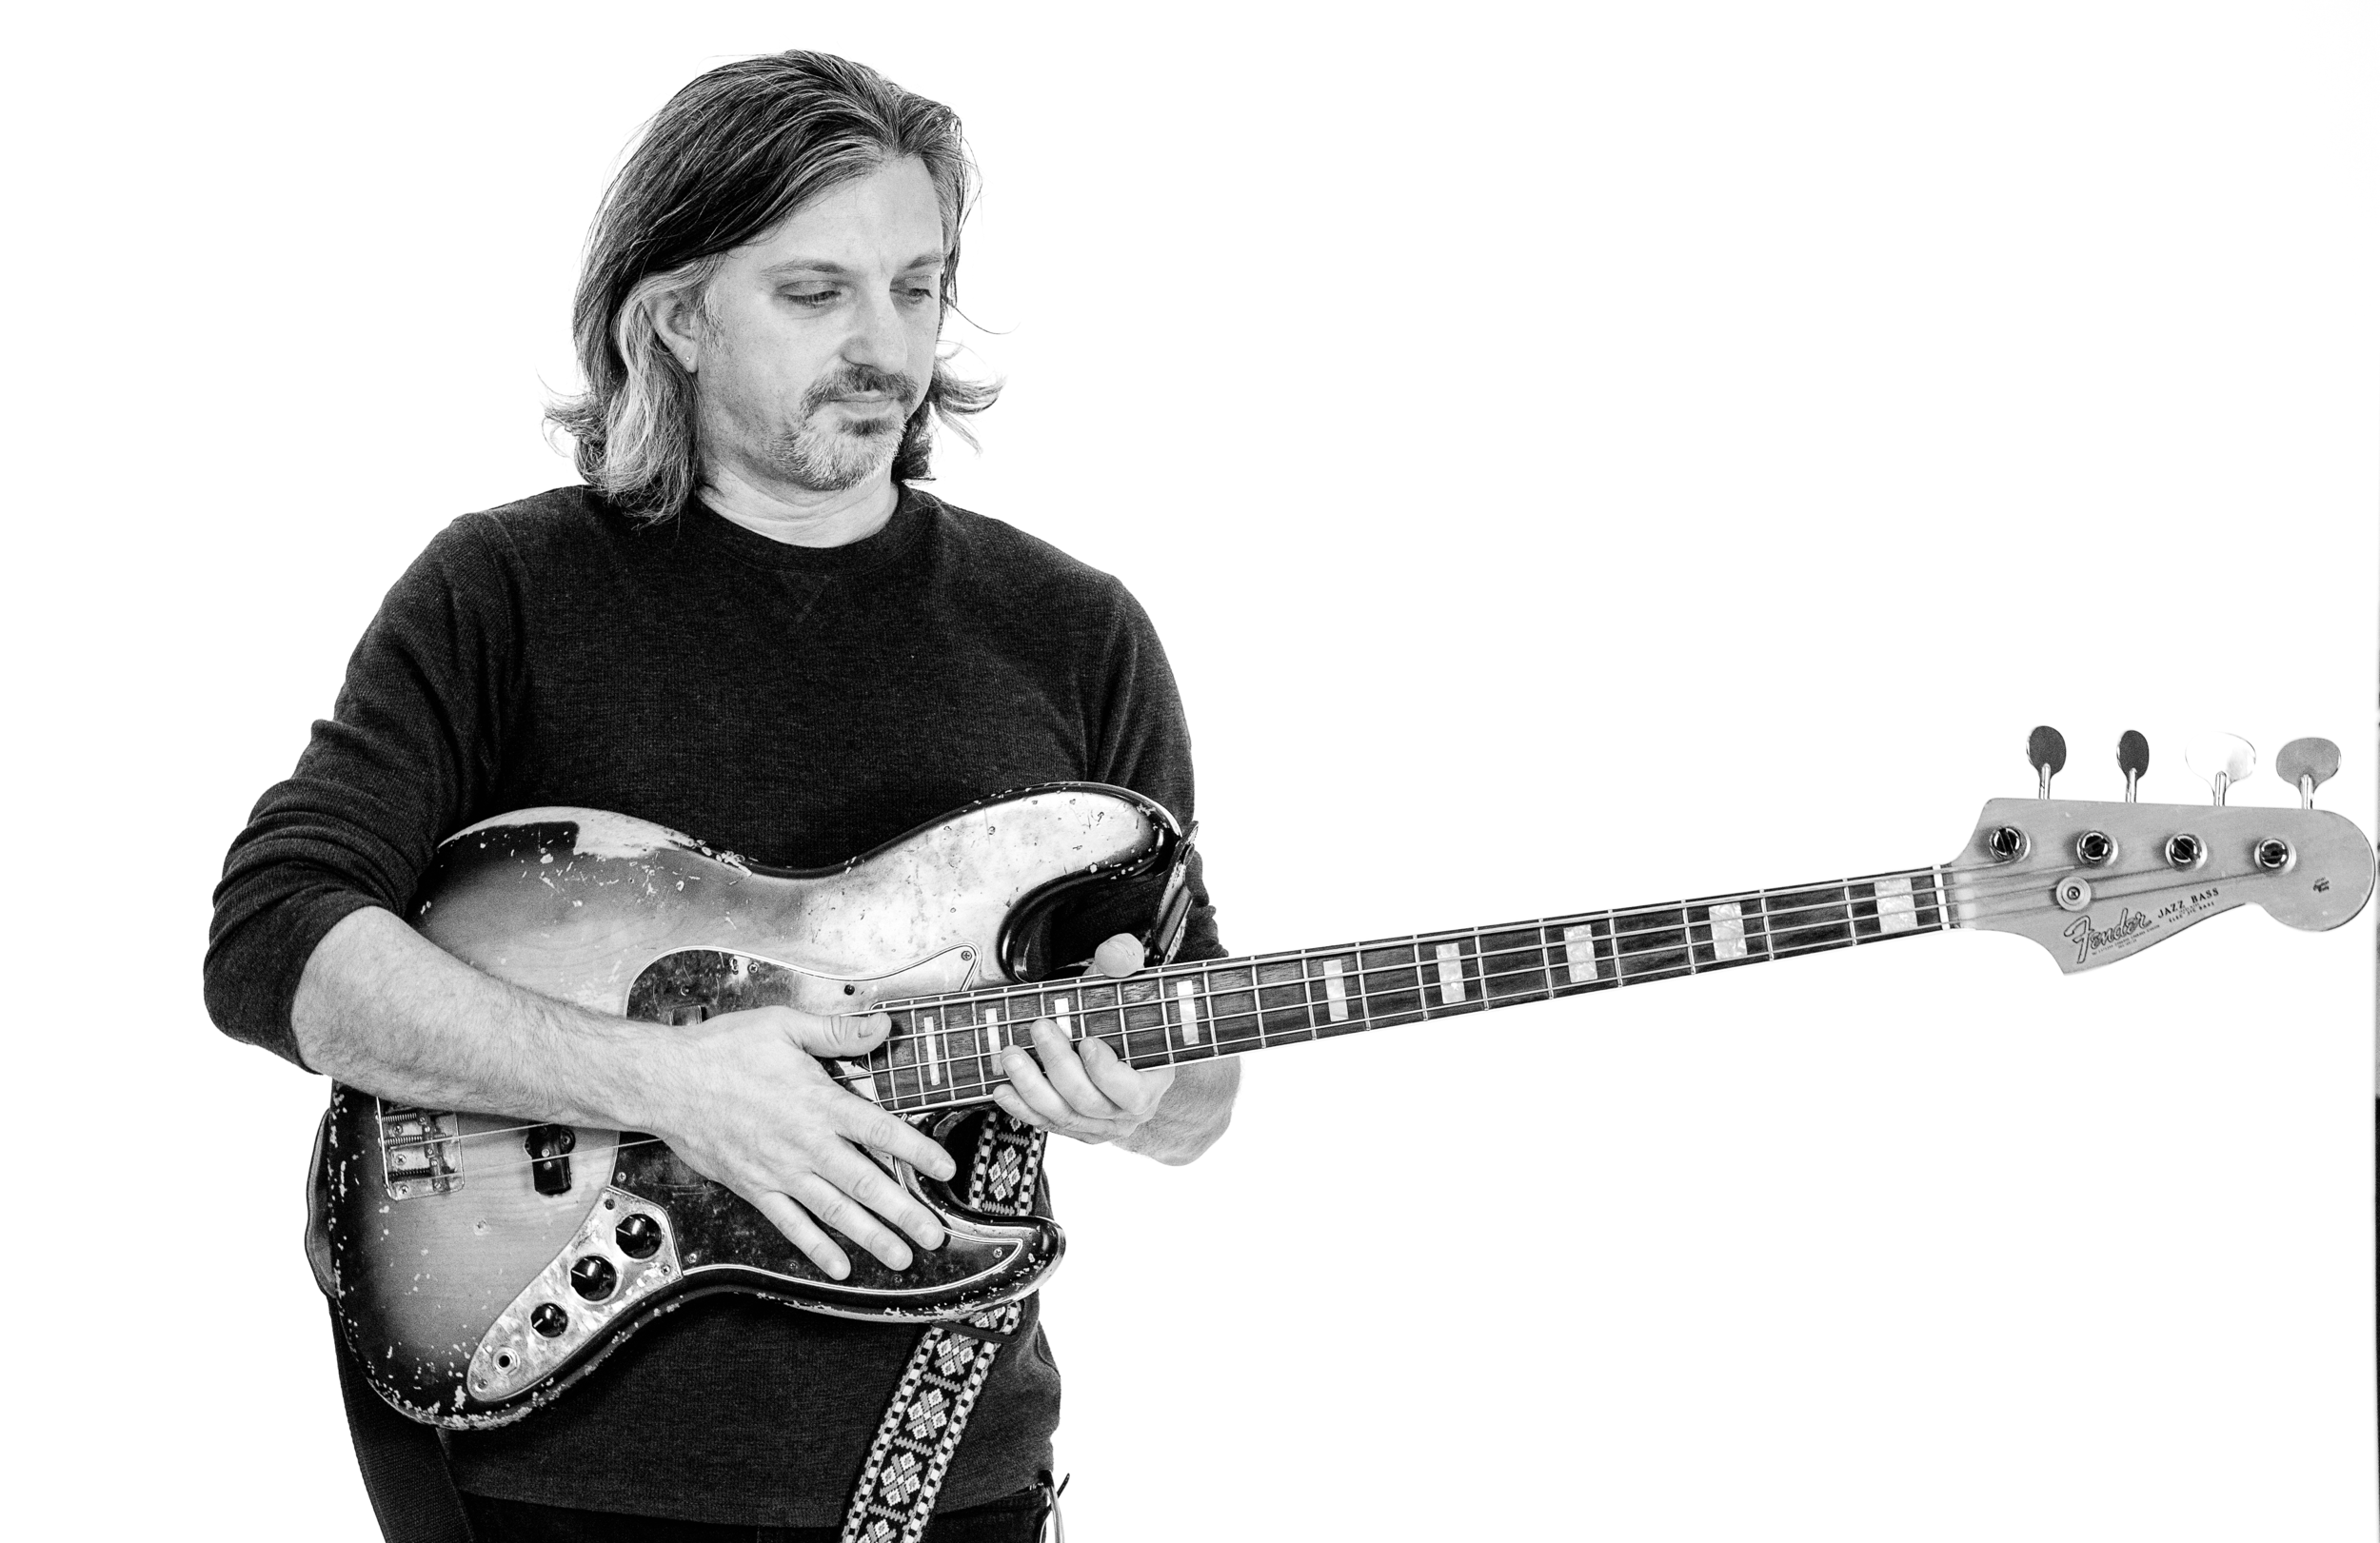 andy stoller on bass